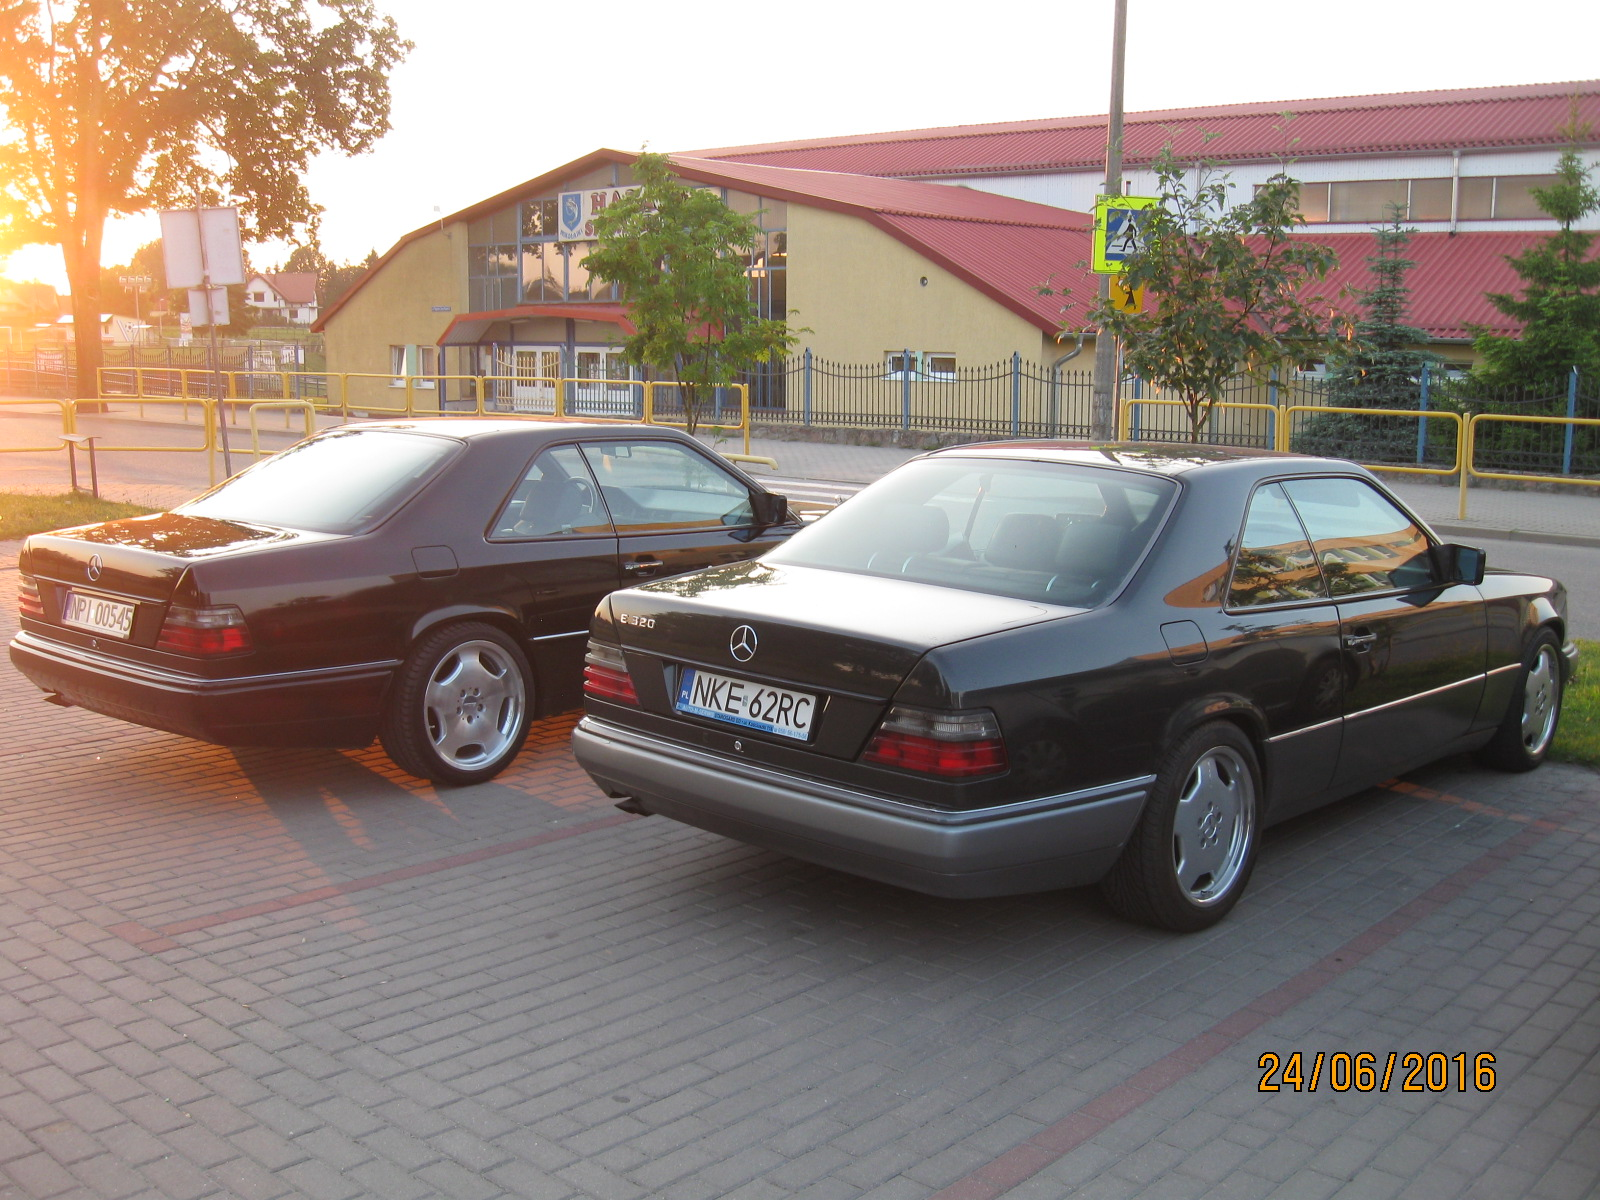 http://124coupe.pl/hosting/images/1466803437.jpg